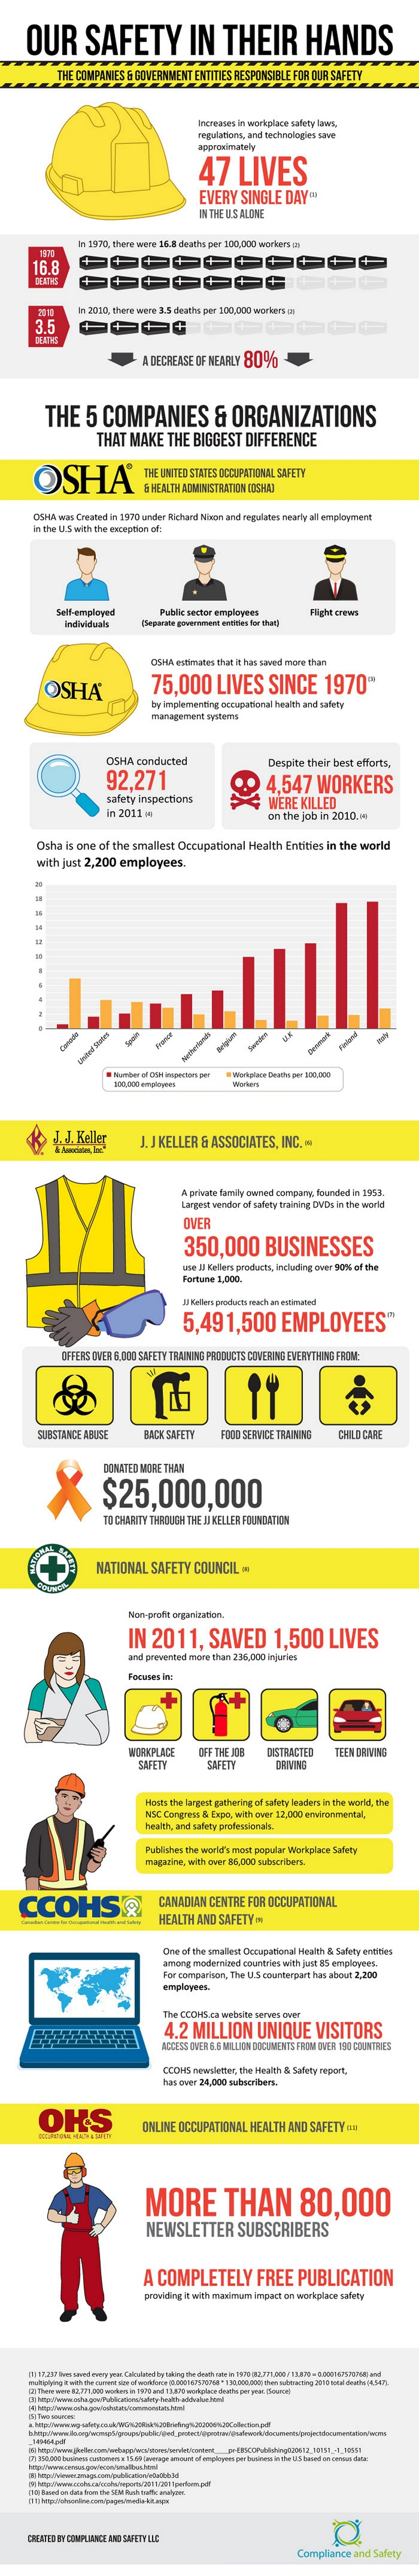 Did you know that workplace safety regulations save 47